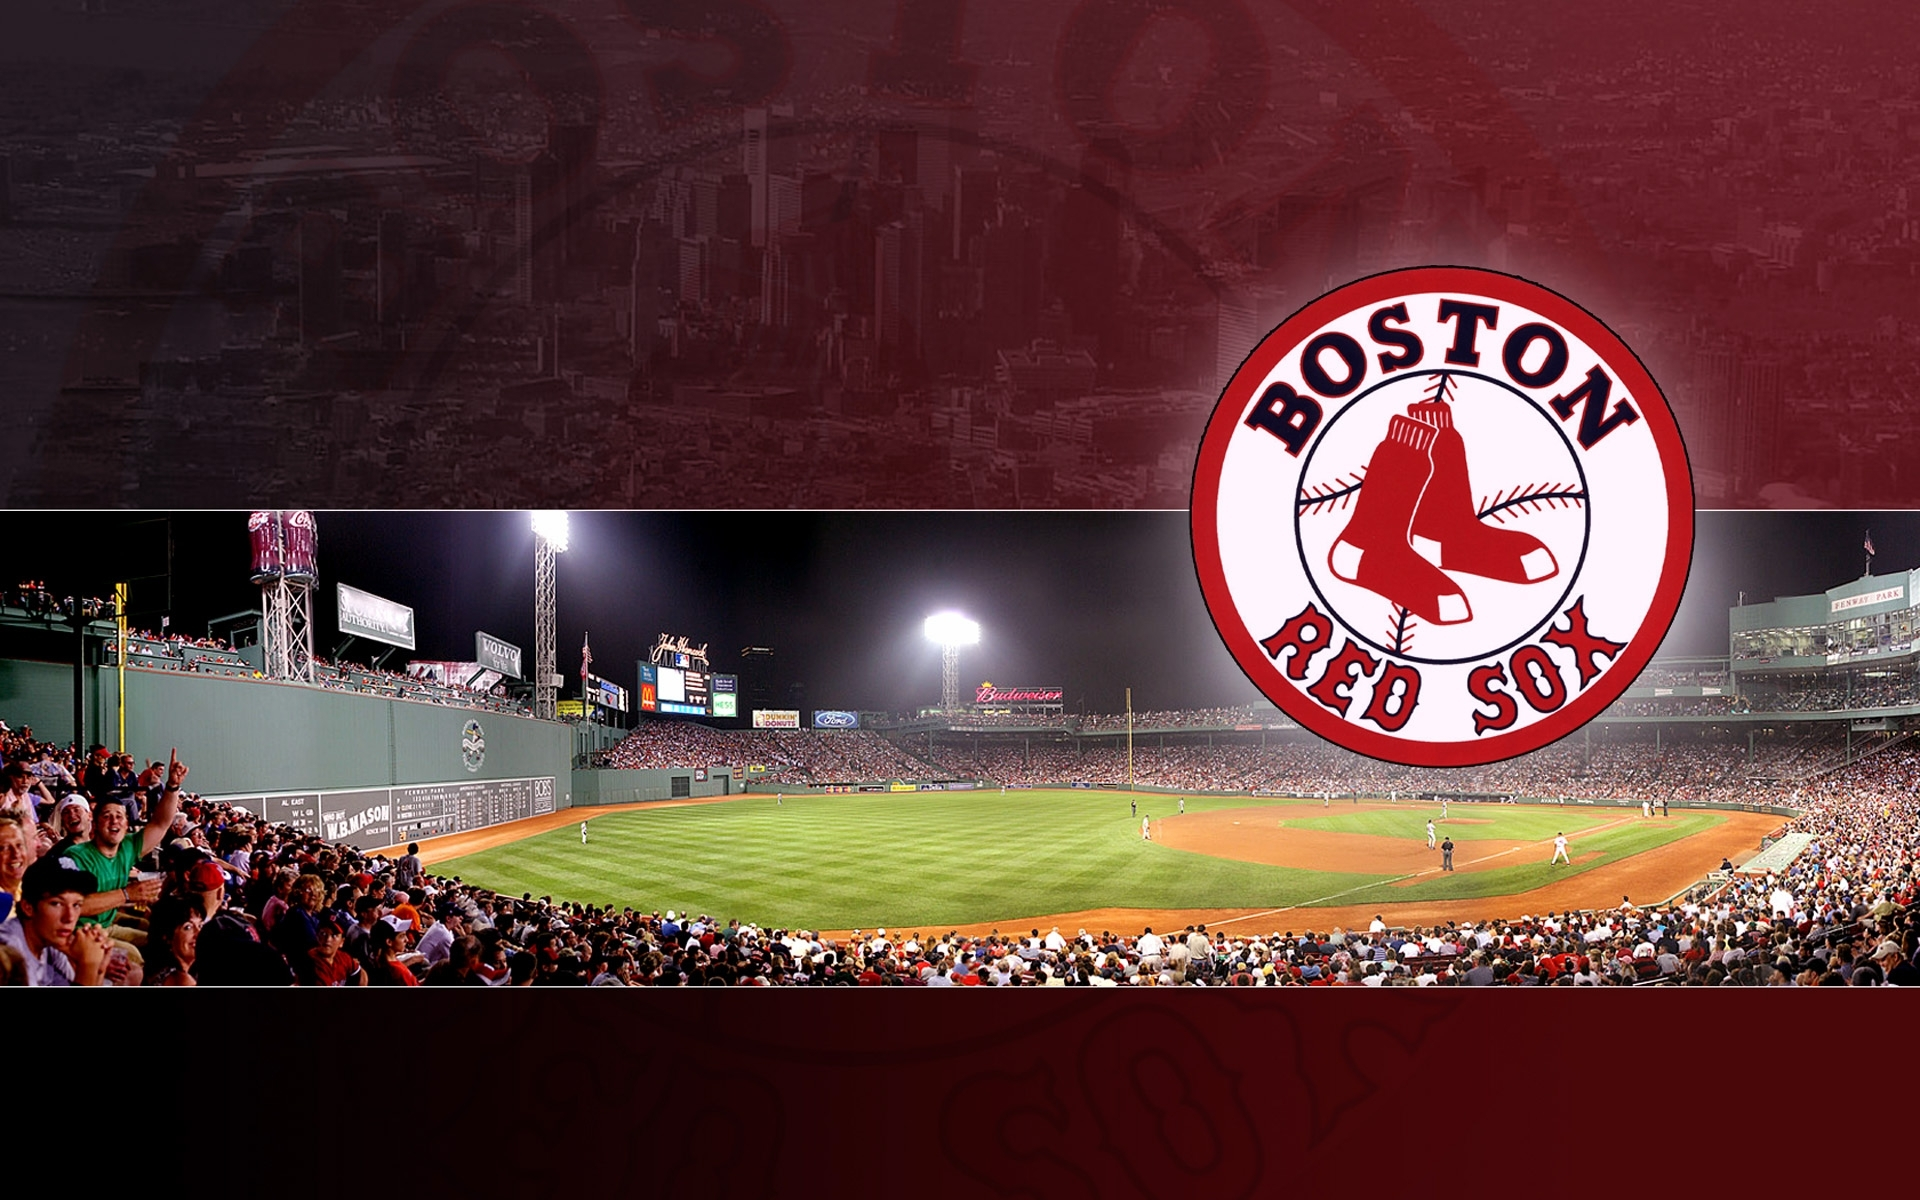 boston red sox logo pictures. - media file | pixelstalk